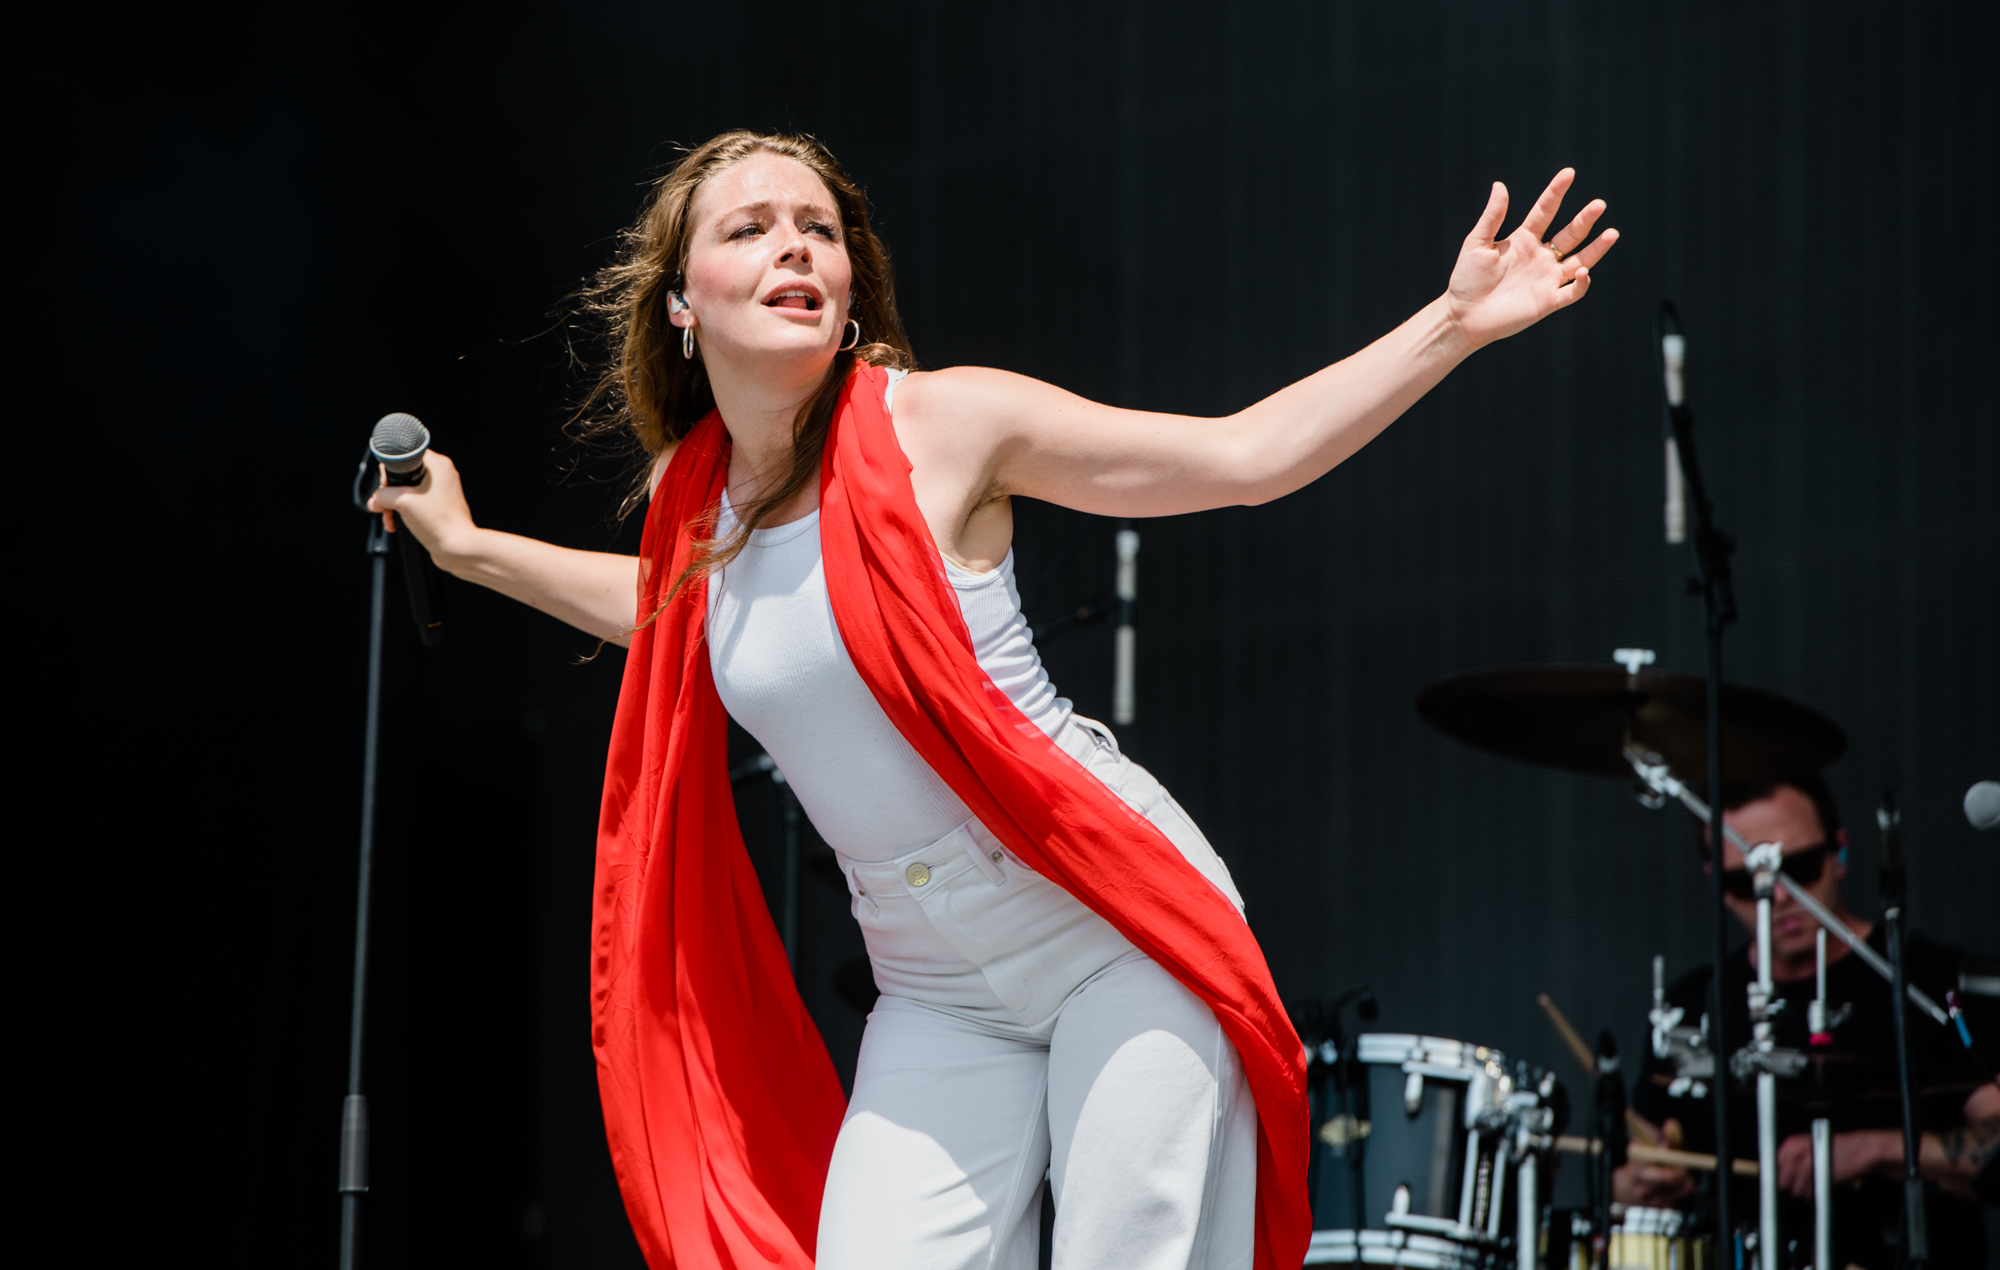 MAGGIE-ROGERS-ANDY-HUGHES-NME-GLASTO19-5137